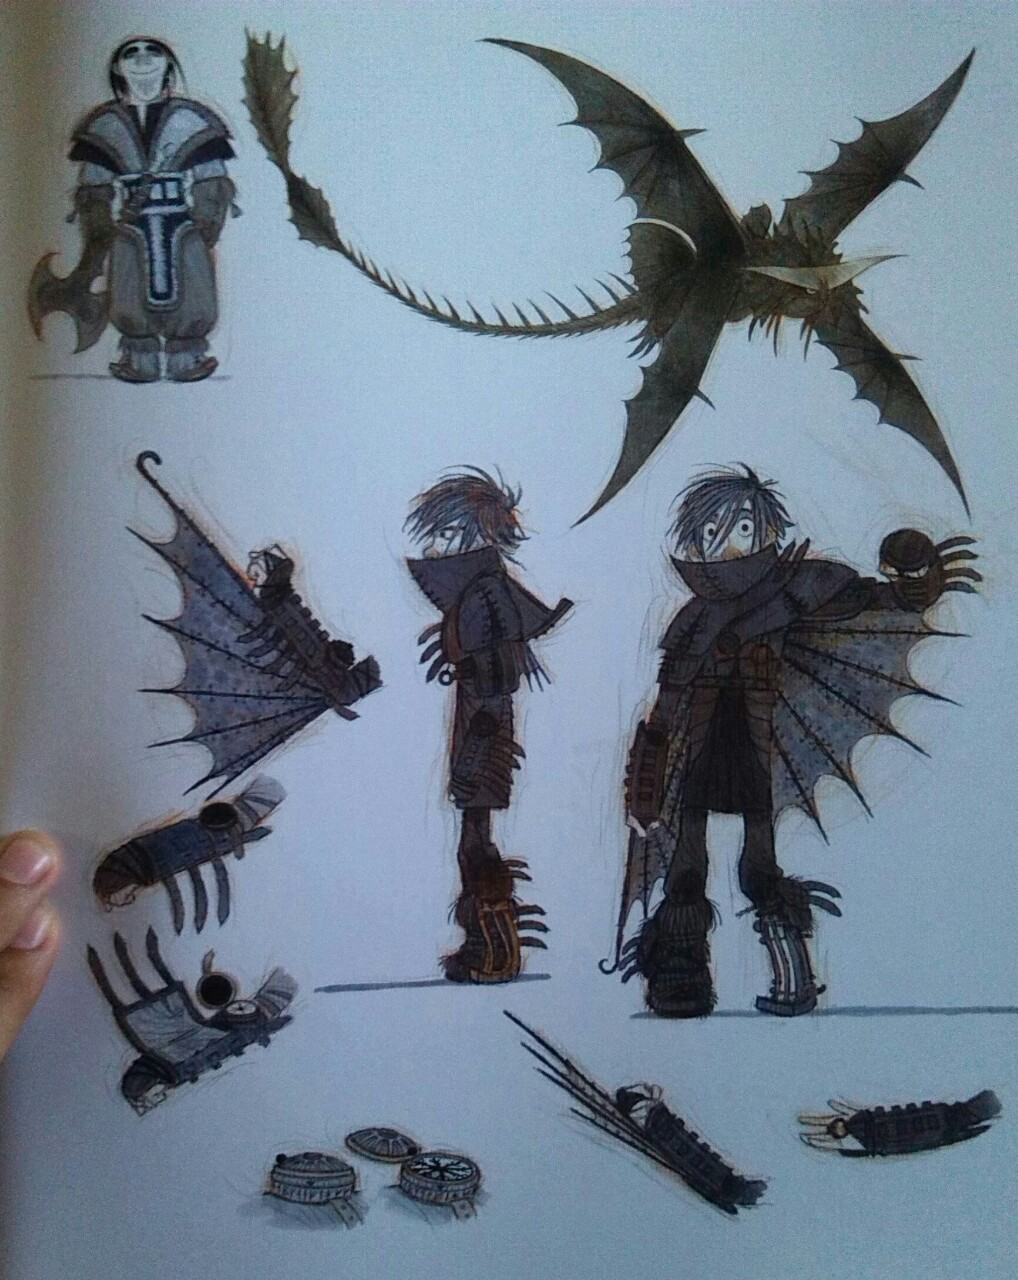 How To Train Your Dragon 2 Concept Art - How to Train Your ...